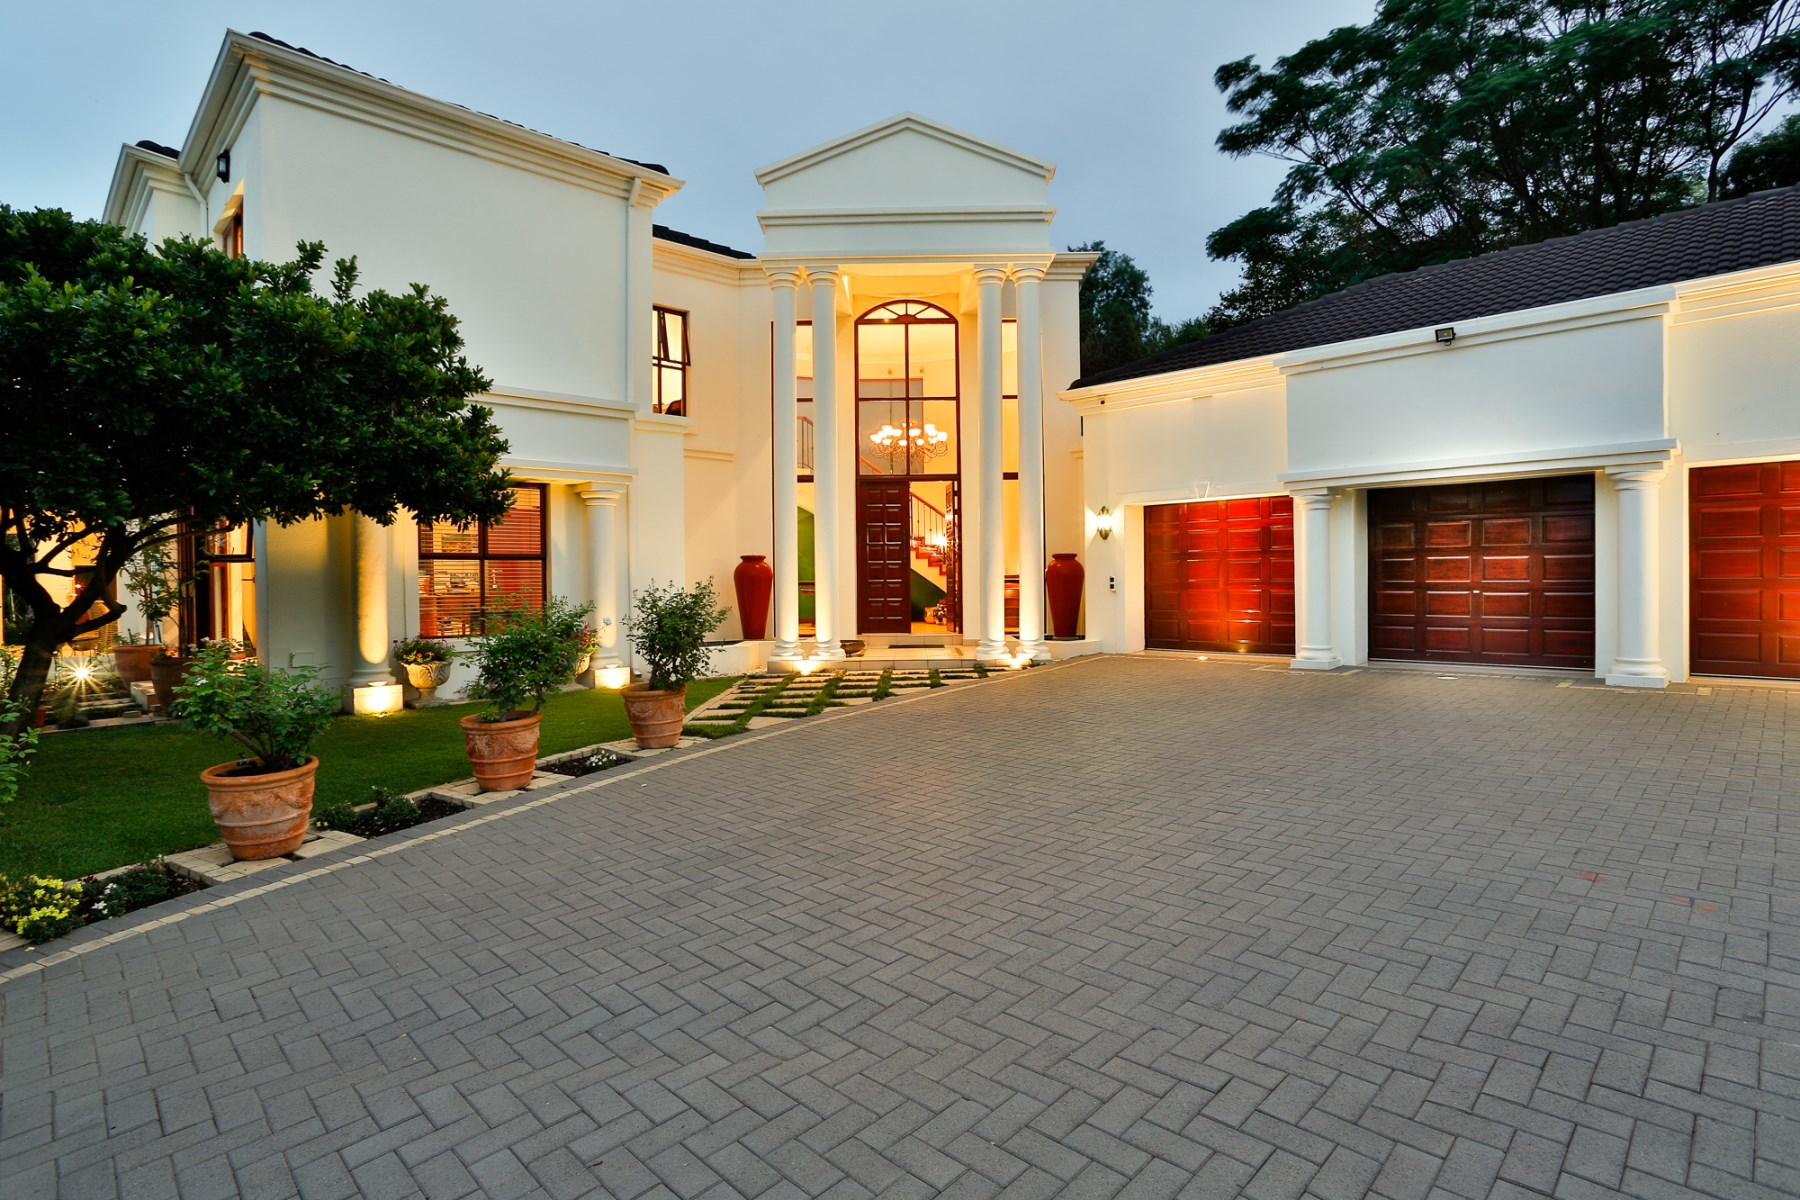 Single Family Home for Sale at A Georgian house in Bryanston Johannesburg, Gauteng South Africa